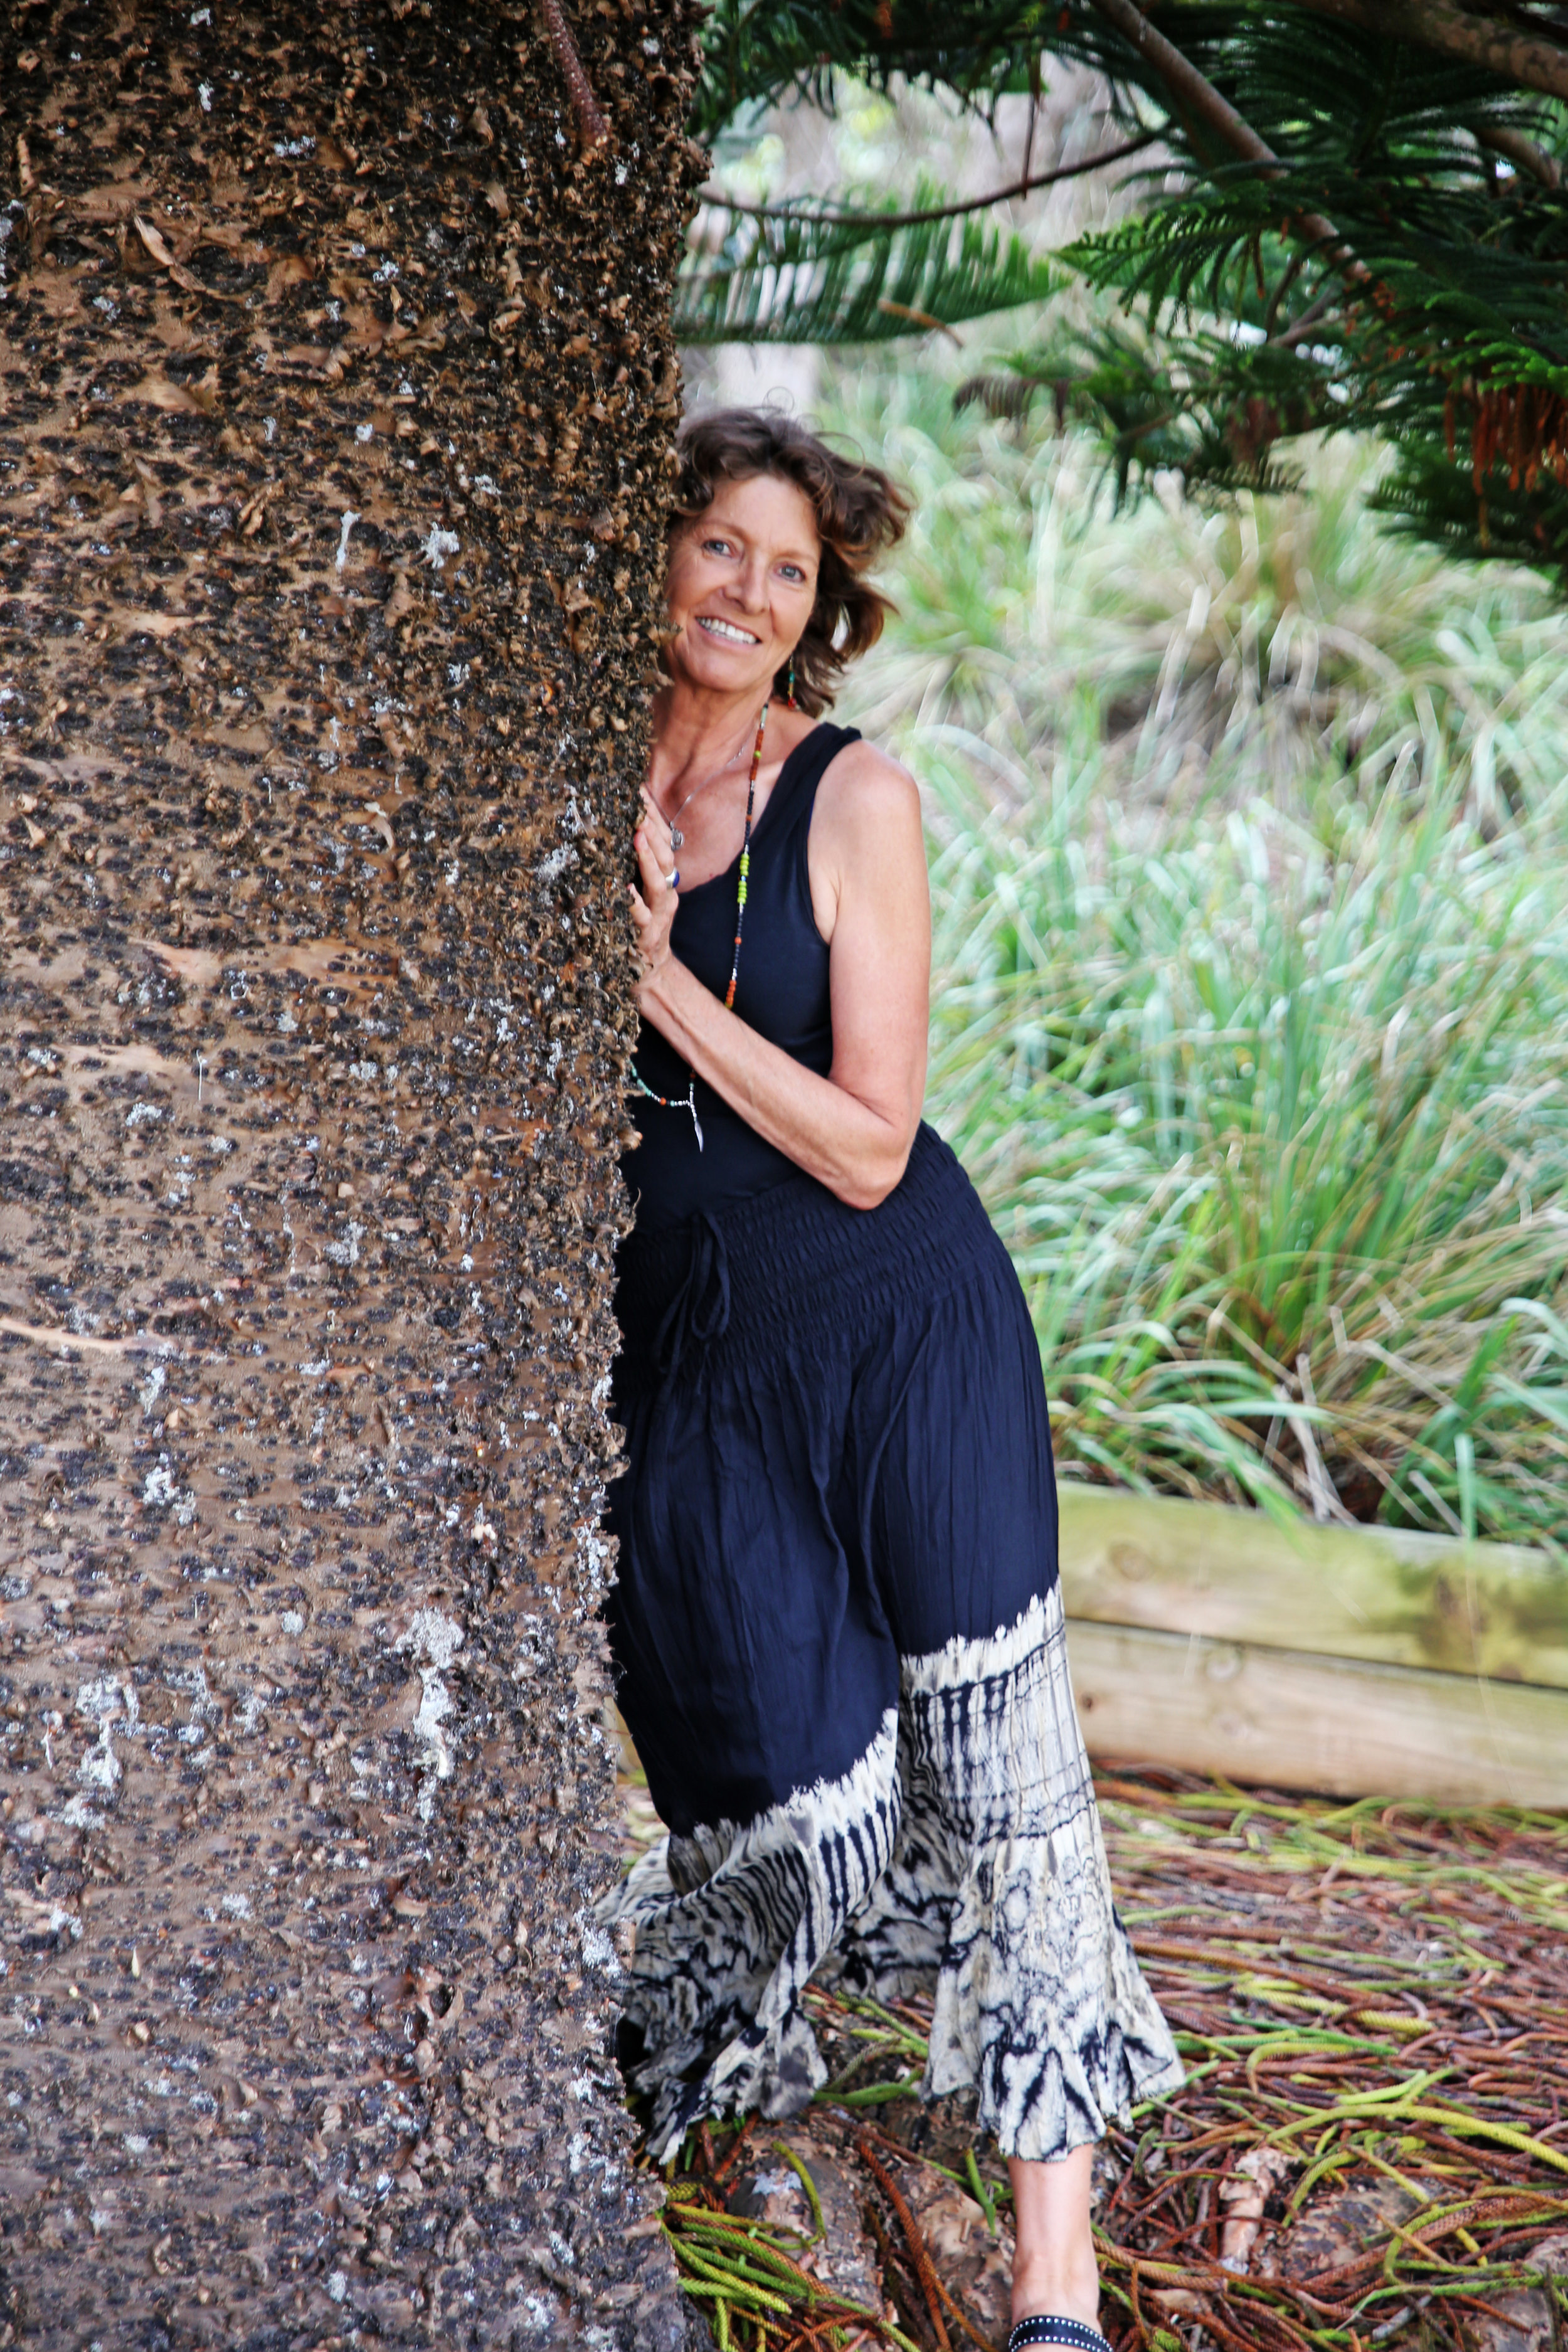 Welcome - My name is Bernadette Ginnane, Bernie for short. I am a Shamanic Practitioner, Sound Energy Healer, Yoga Teacher, an empowering Workshop Facilitator and writer, incorporating yoga, sound healing, ceremony and meditation into my practice and workshops.Are you ready to re-write a new story for yourself?A story of healing, empowerment, peace and purpose?Are you ready to go within, to dive deep to bring your shadow side into the light of awareness where healing and real change can take place?Through gentle yoga and sound energy healing I assist others to gently release tension in their physical body, and to calm and quieten their minds.Through gentle shamanic drumming meditations, either private or group sessions, I assist others to go within and connect with their own inner knowing and wisdom.I specialise in the removing energetic blockages and re-balancing the natural flow of the energy with the body.